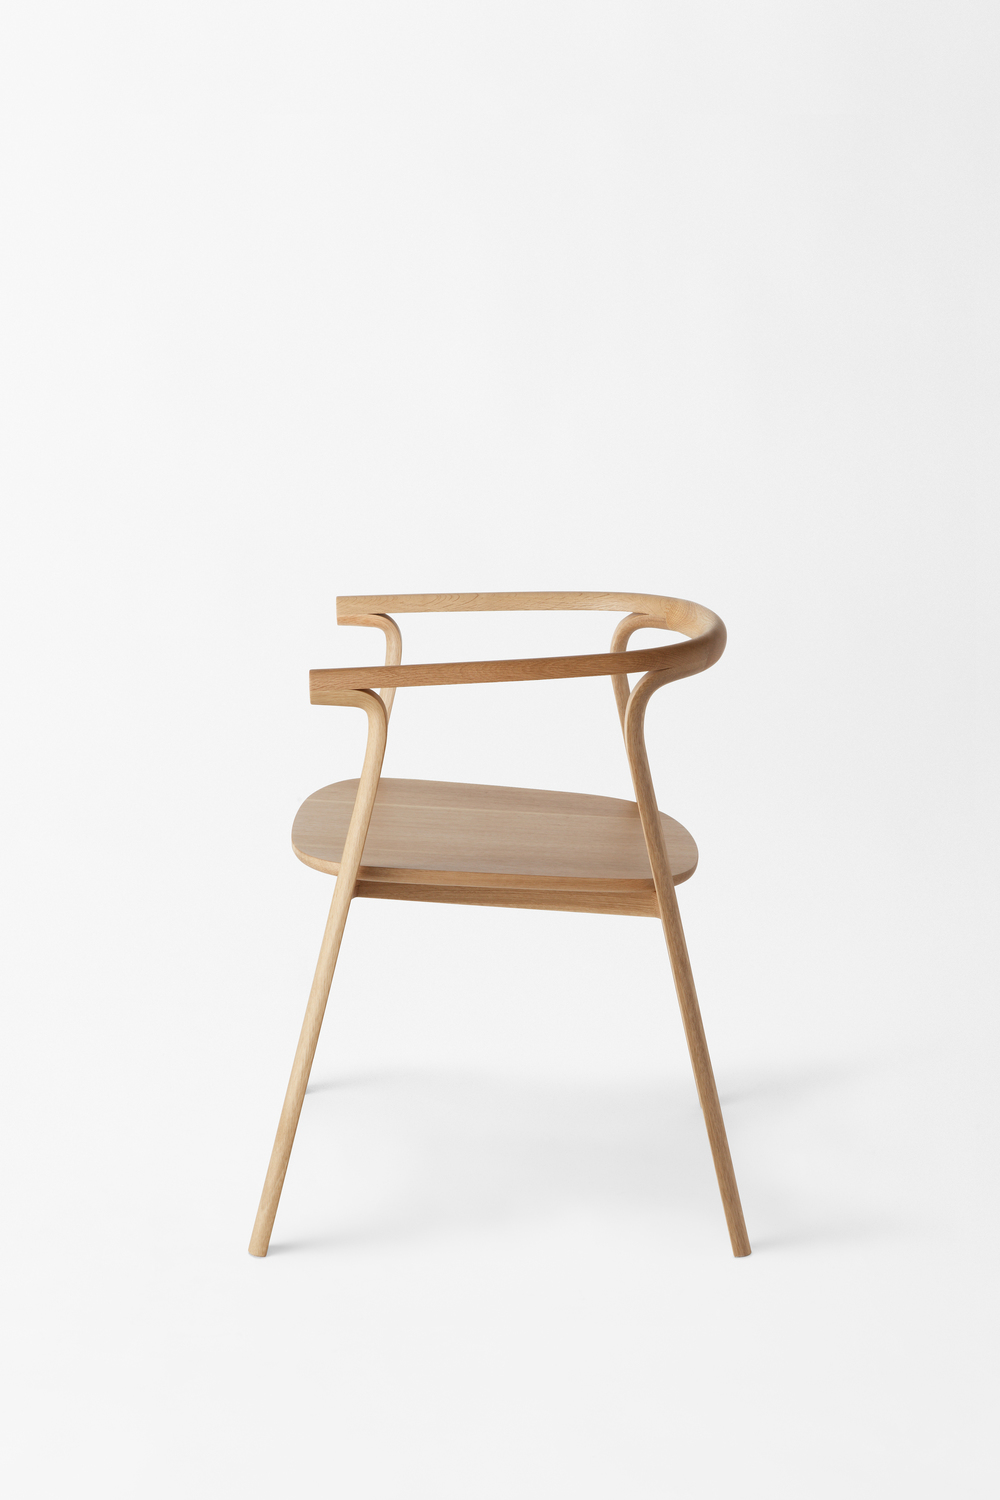 Nendo - Splinter Armchair - 3.jpg